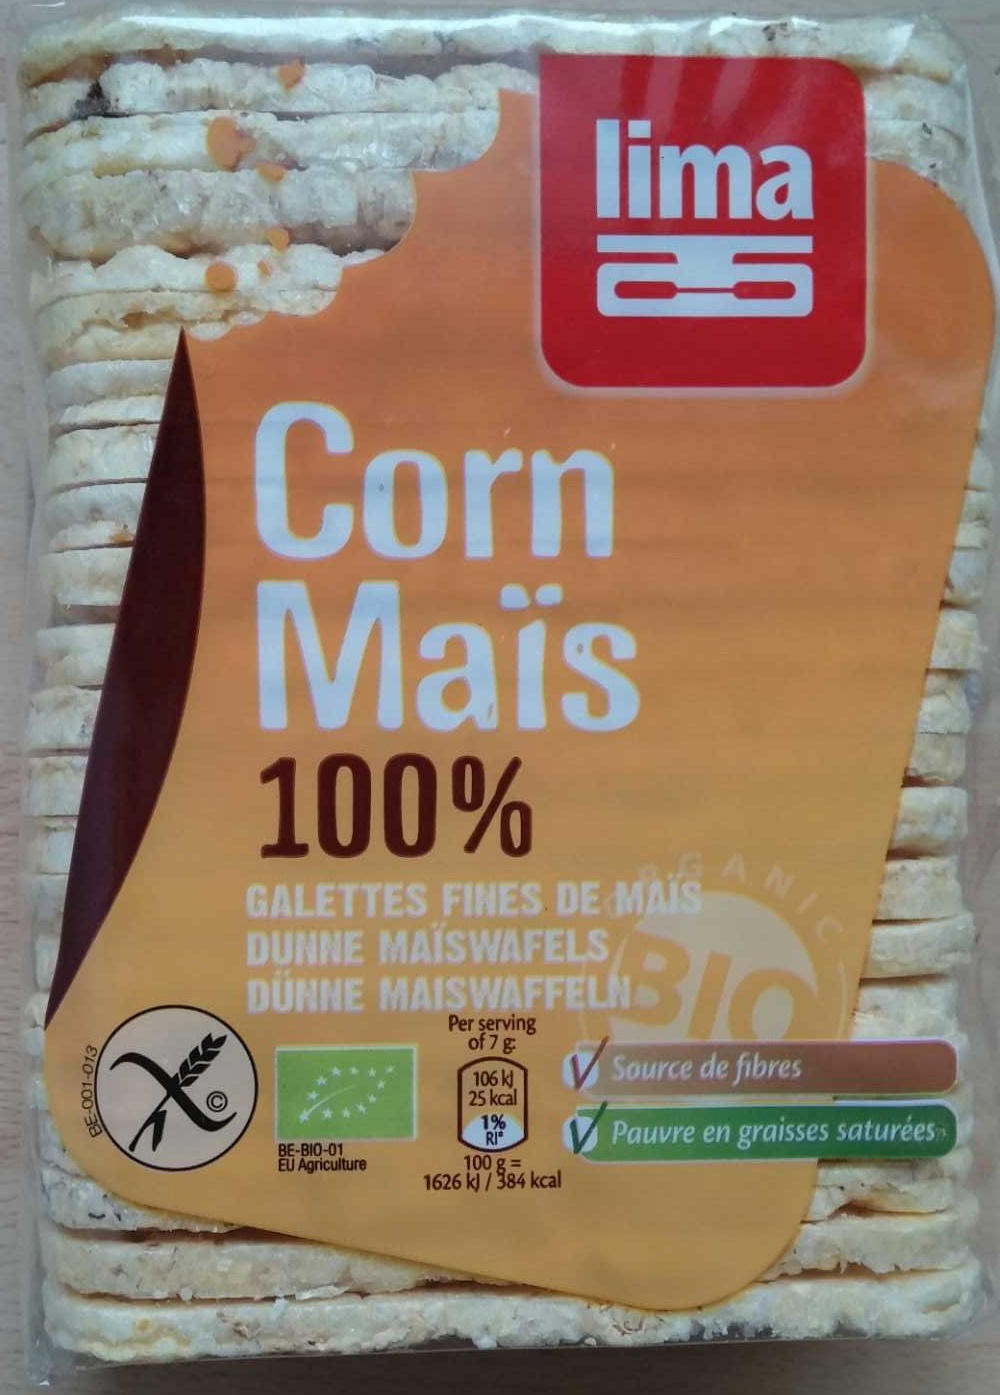 Corn maïs - Product - fr